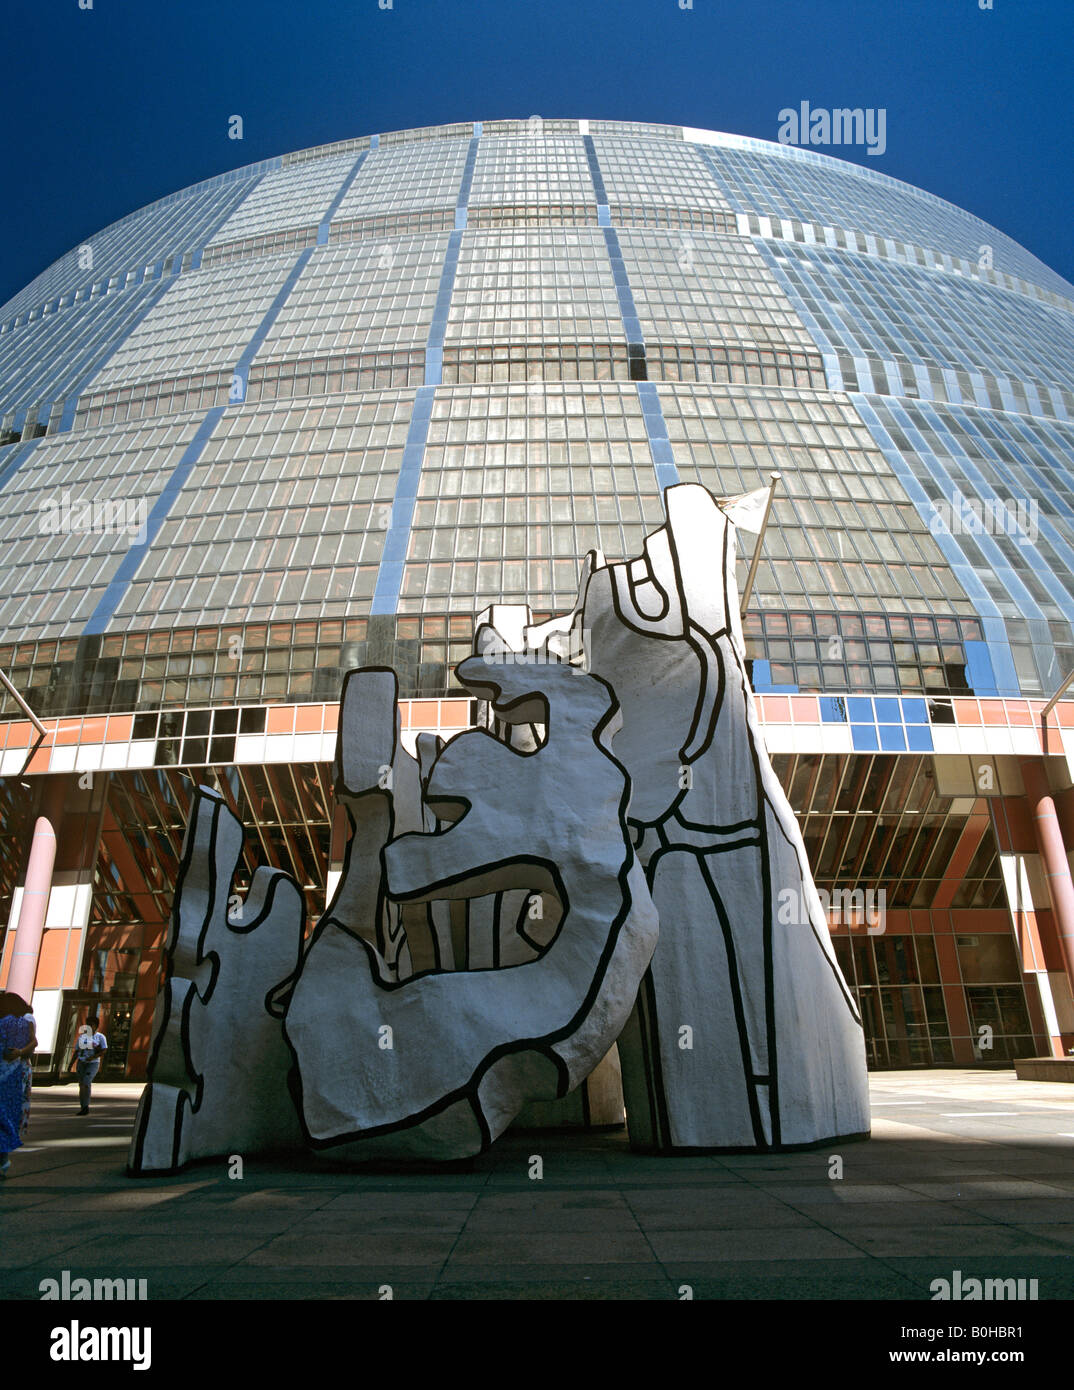 Picasso artwork in Chicago, Illinois, USA - Stock Image